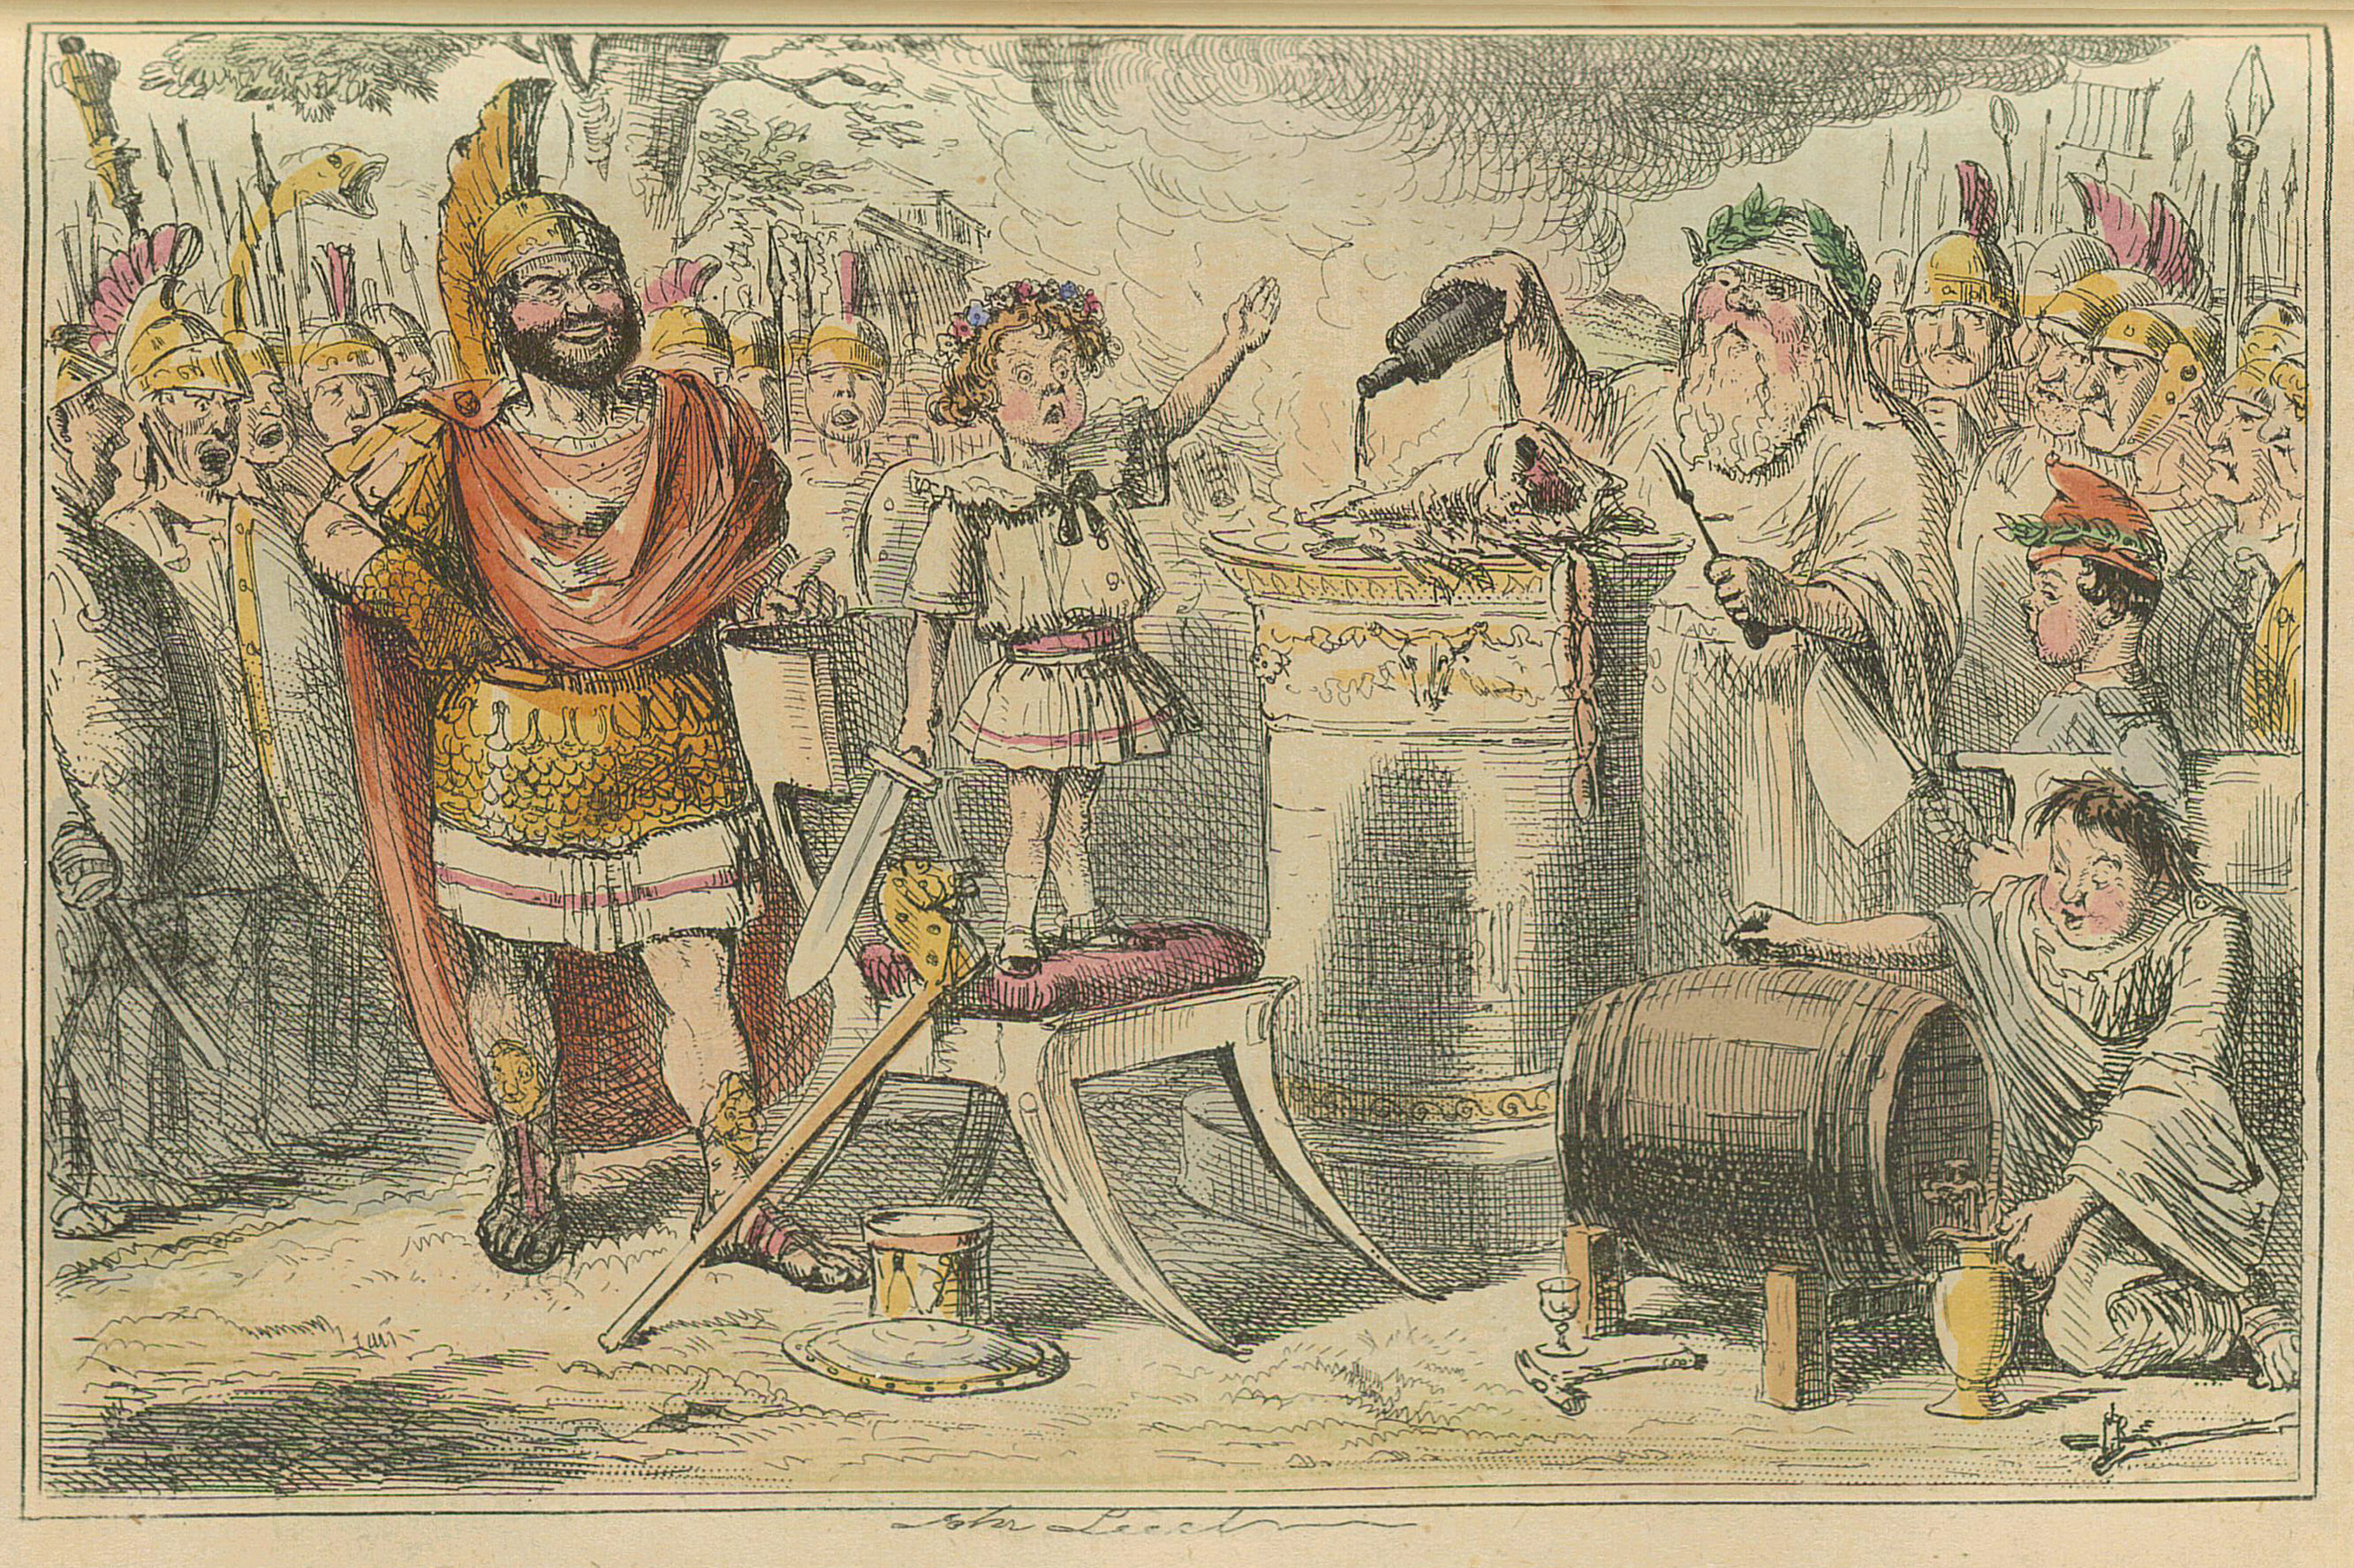 1850s newspaper cartoon in color of a young child standing on a chair holding a sword, declaiming while surrounded by soldiers